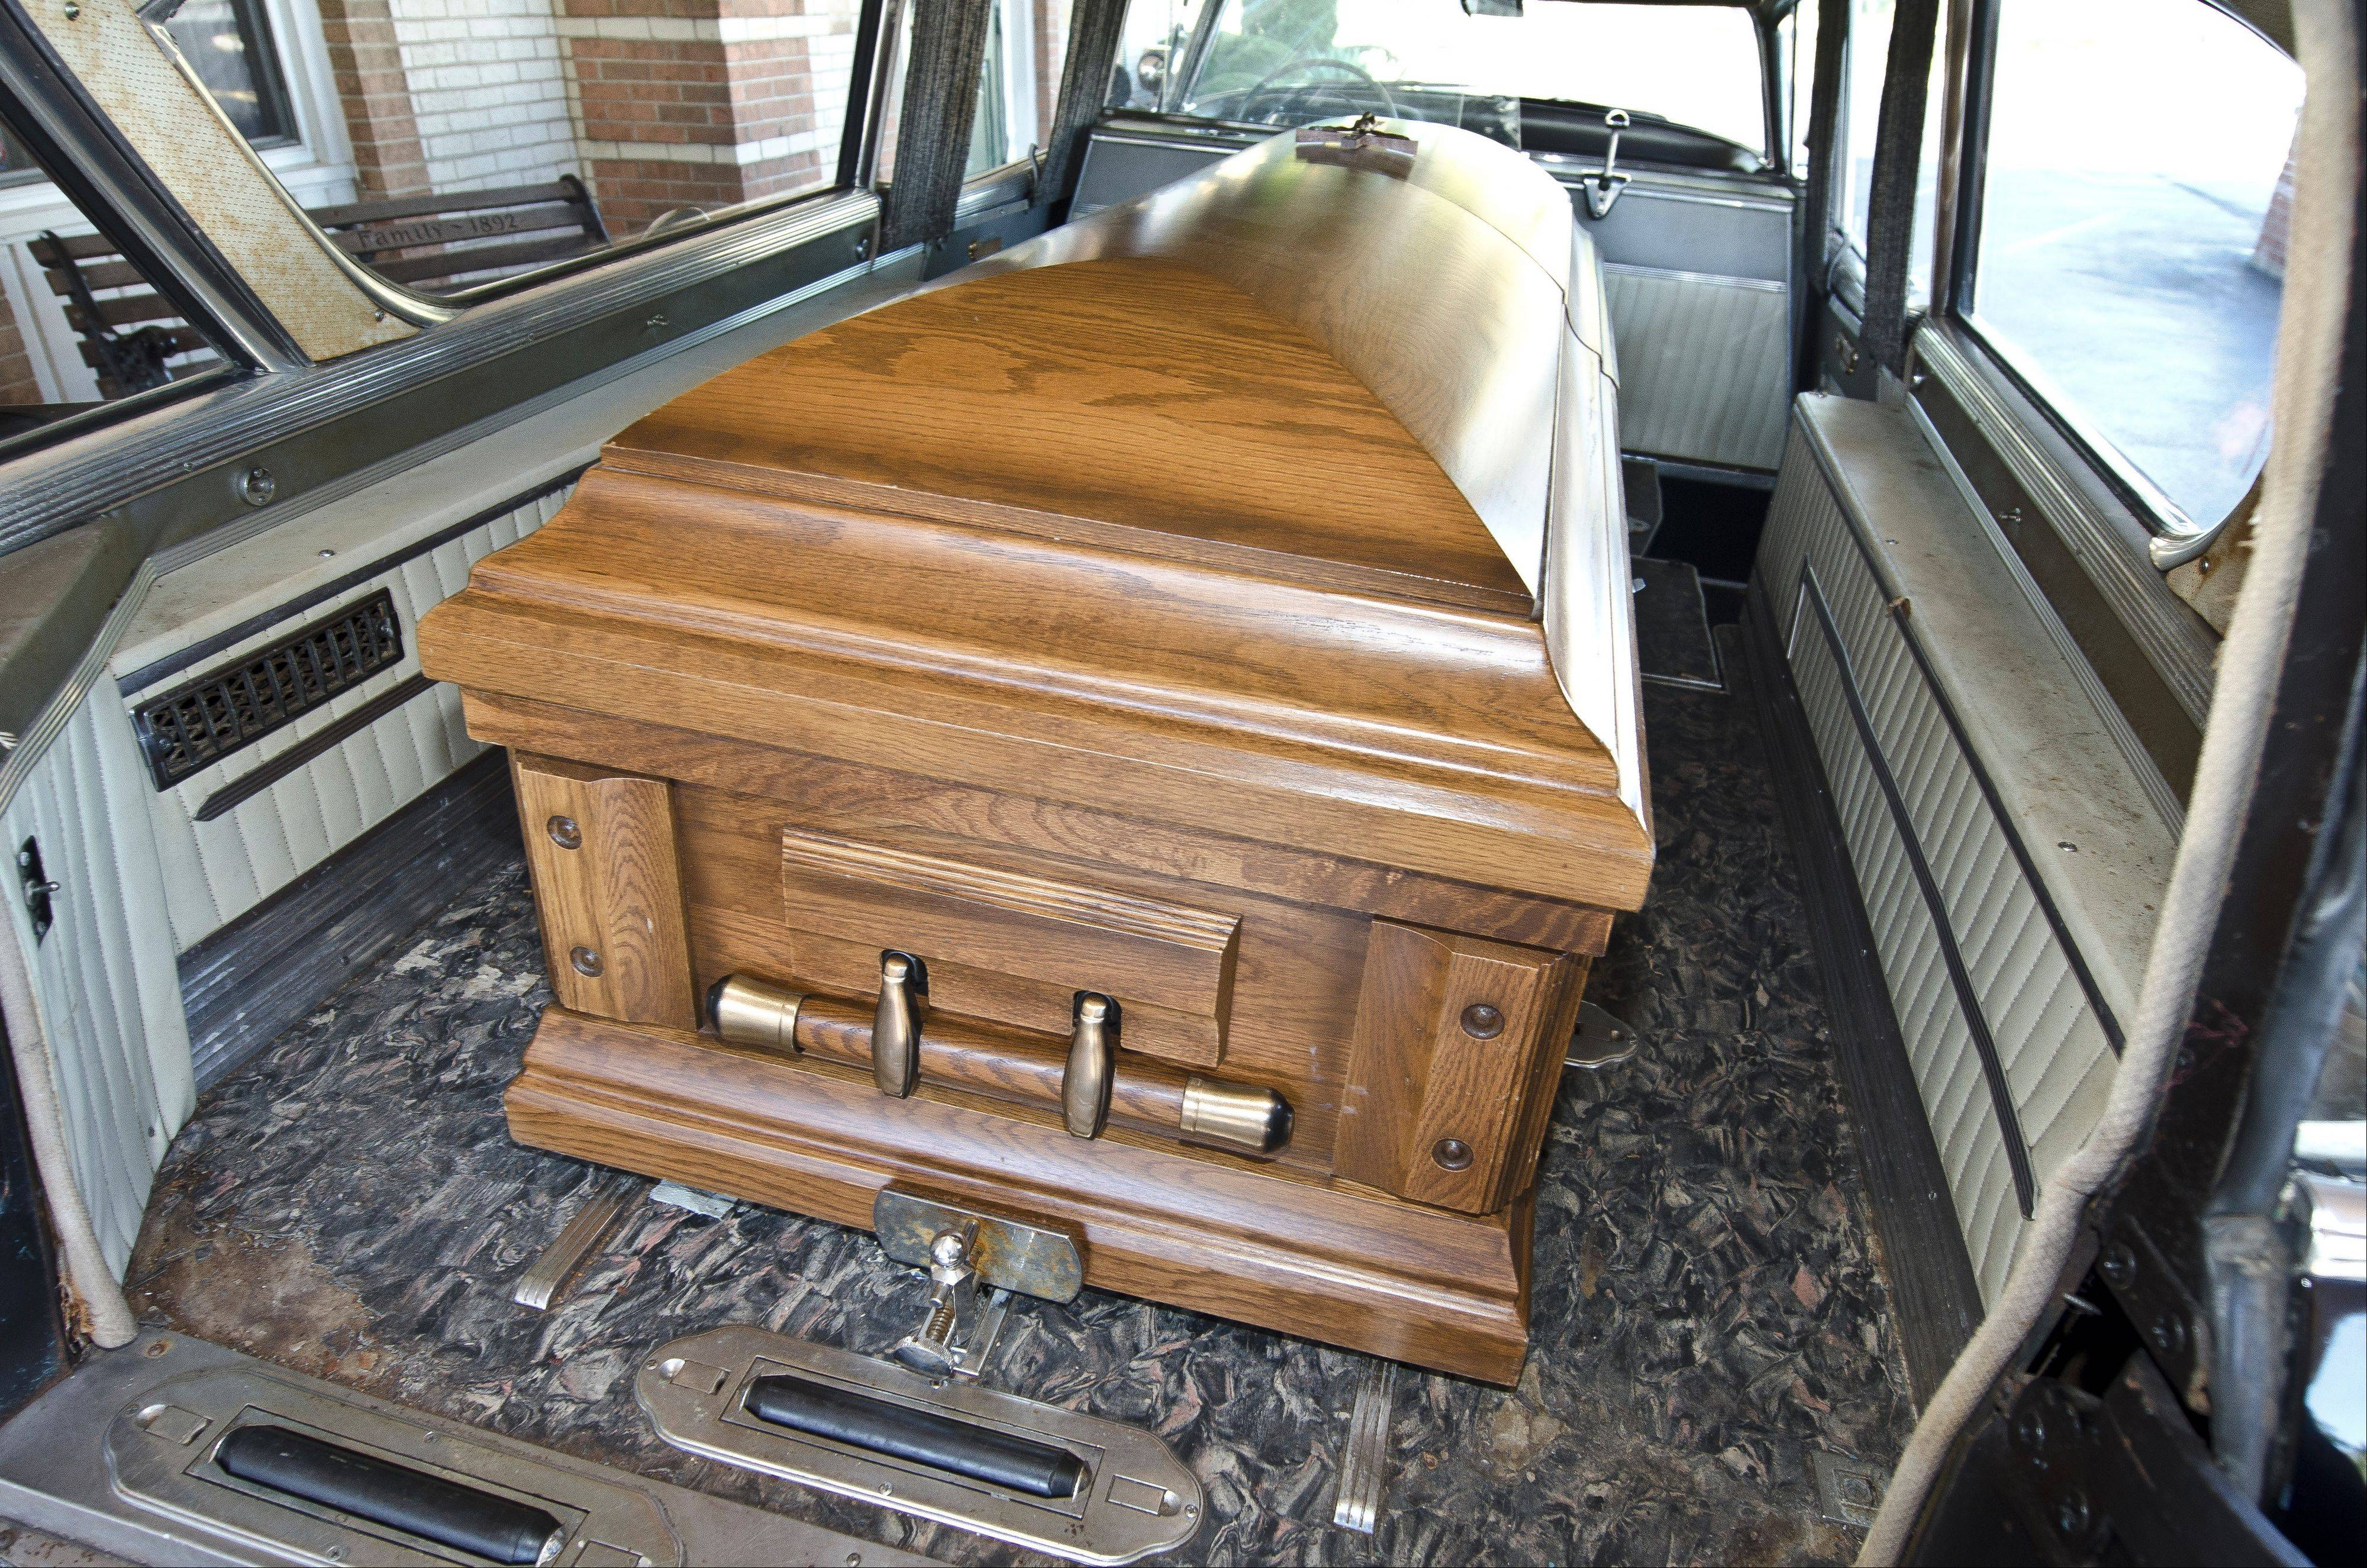 The Ahlgrims have a coffin they keep in the hearse for Halloween, cruise nights and other special occasions.